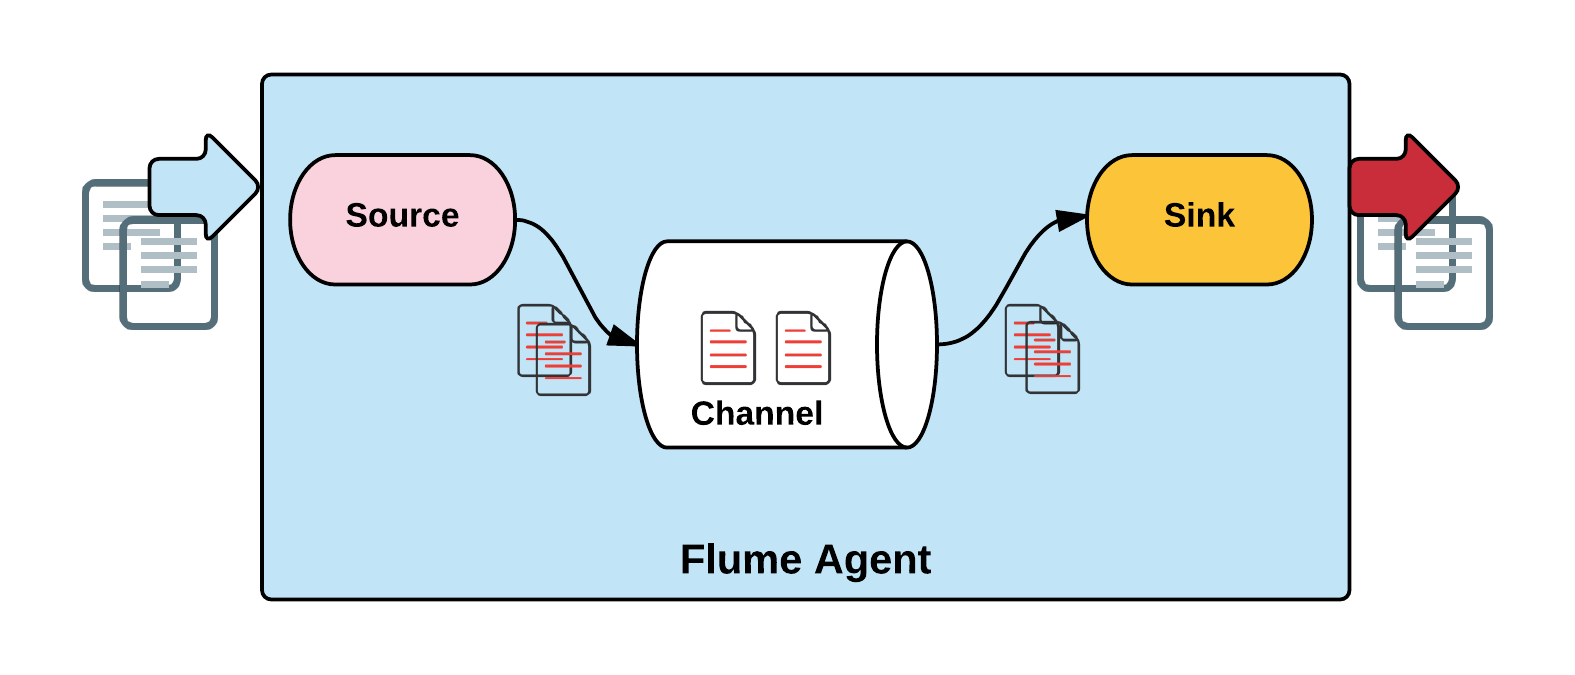 hight resolution of let s start off with a very basic diagram detailing the architecture of flume figure 06 and then in the following sections keep diving deep